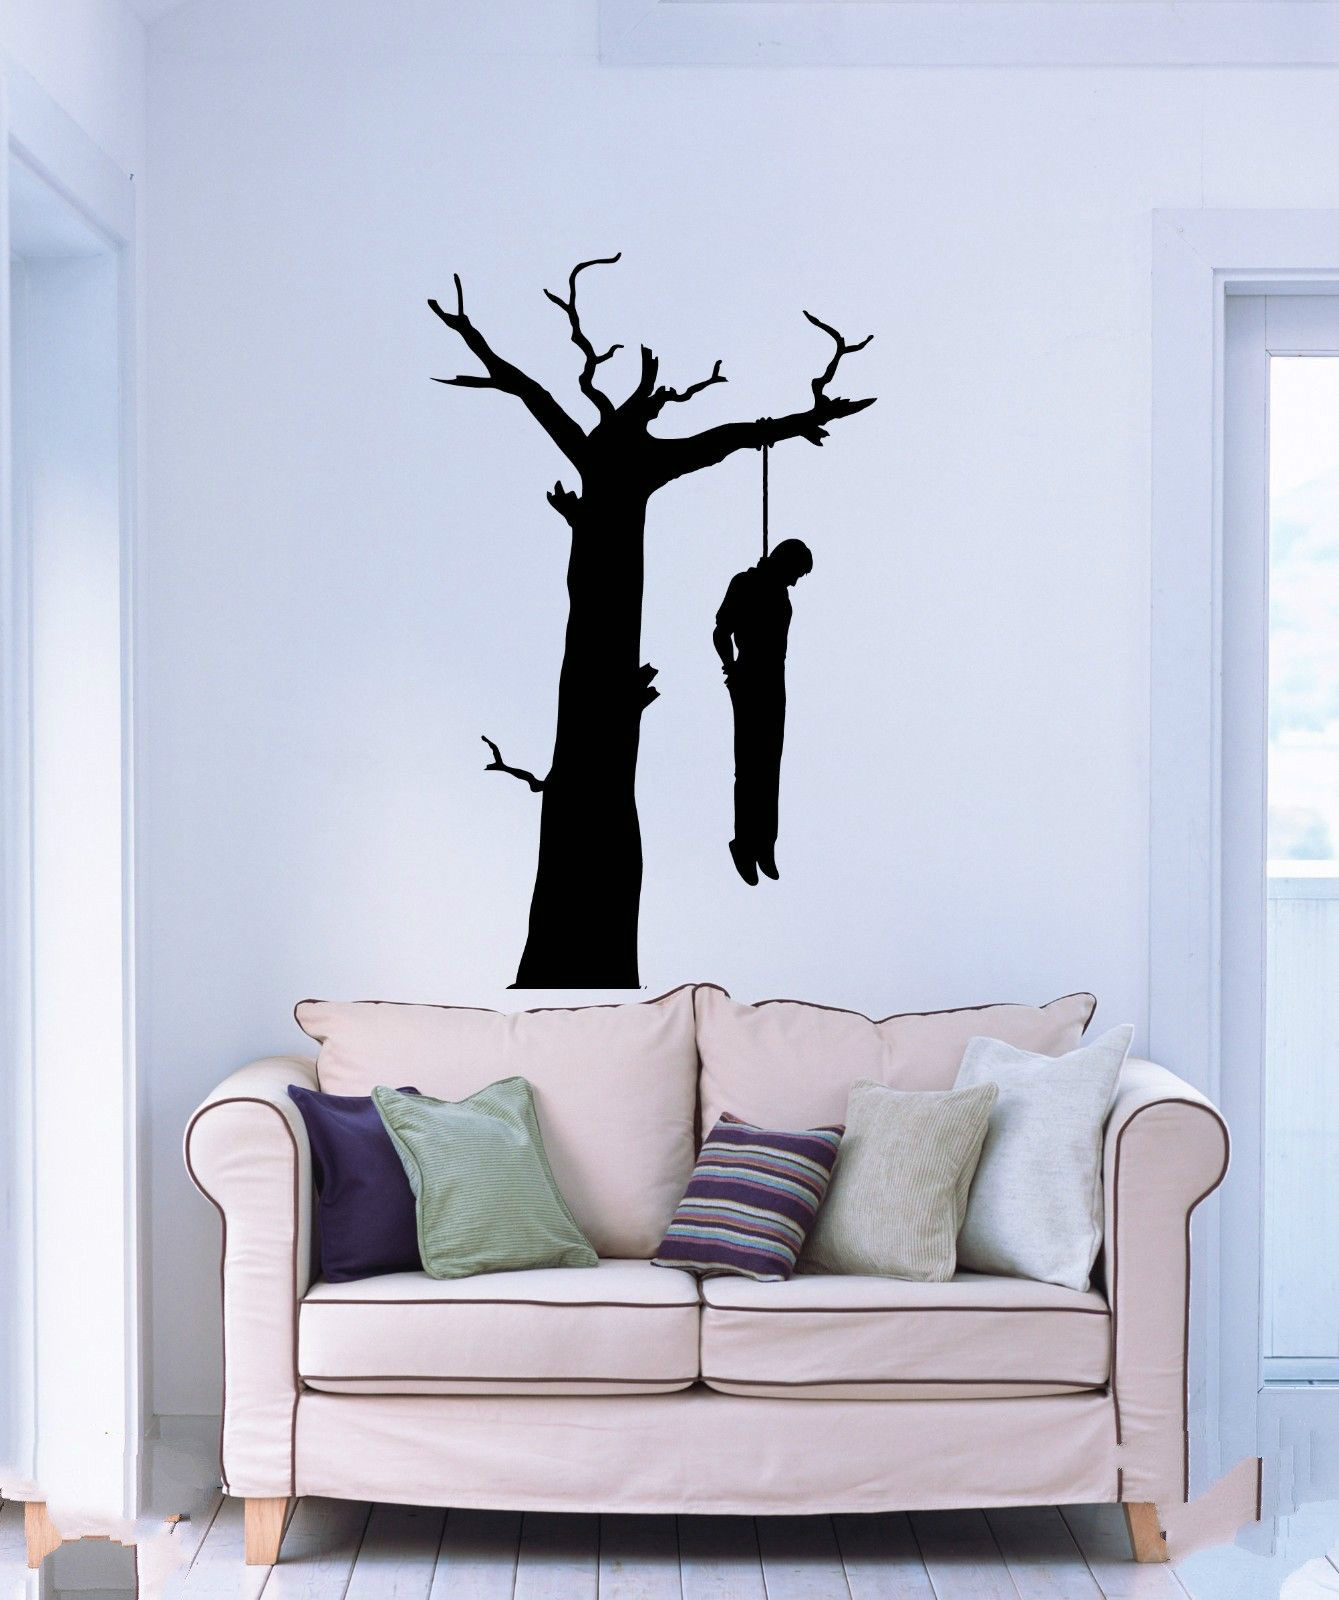 Aliexpress buy wall stickers vinyl suicide man hanging aliexpress buy wall stickers vinyl suicide man hanging himself on a tree branch horror free shipping from reliable wall sticker suppliers on love amipublicfo Gallery